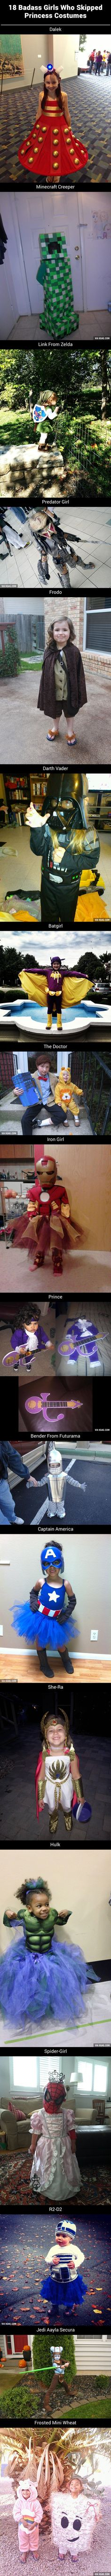 18 Girls Who Skipped Princess Costumes. Just because this is awesome. I love the frosted mini wheat.